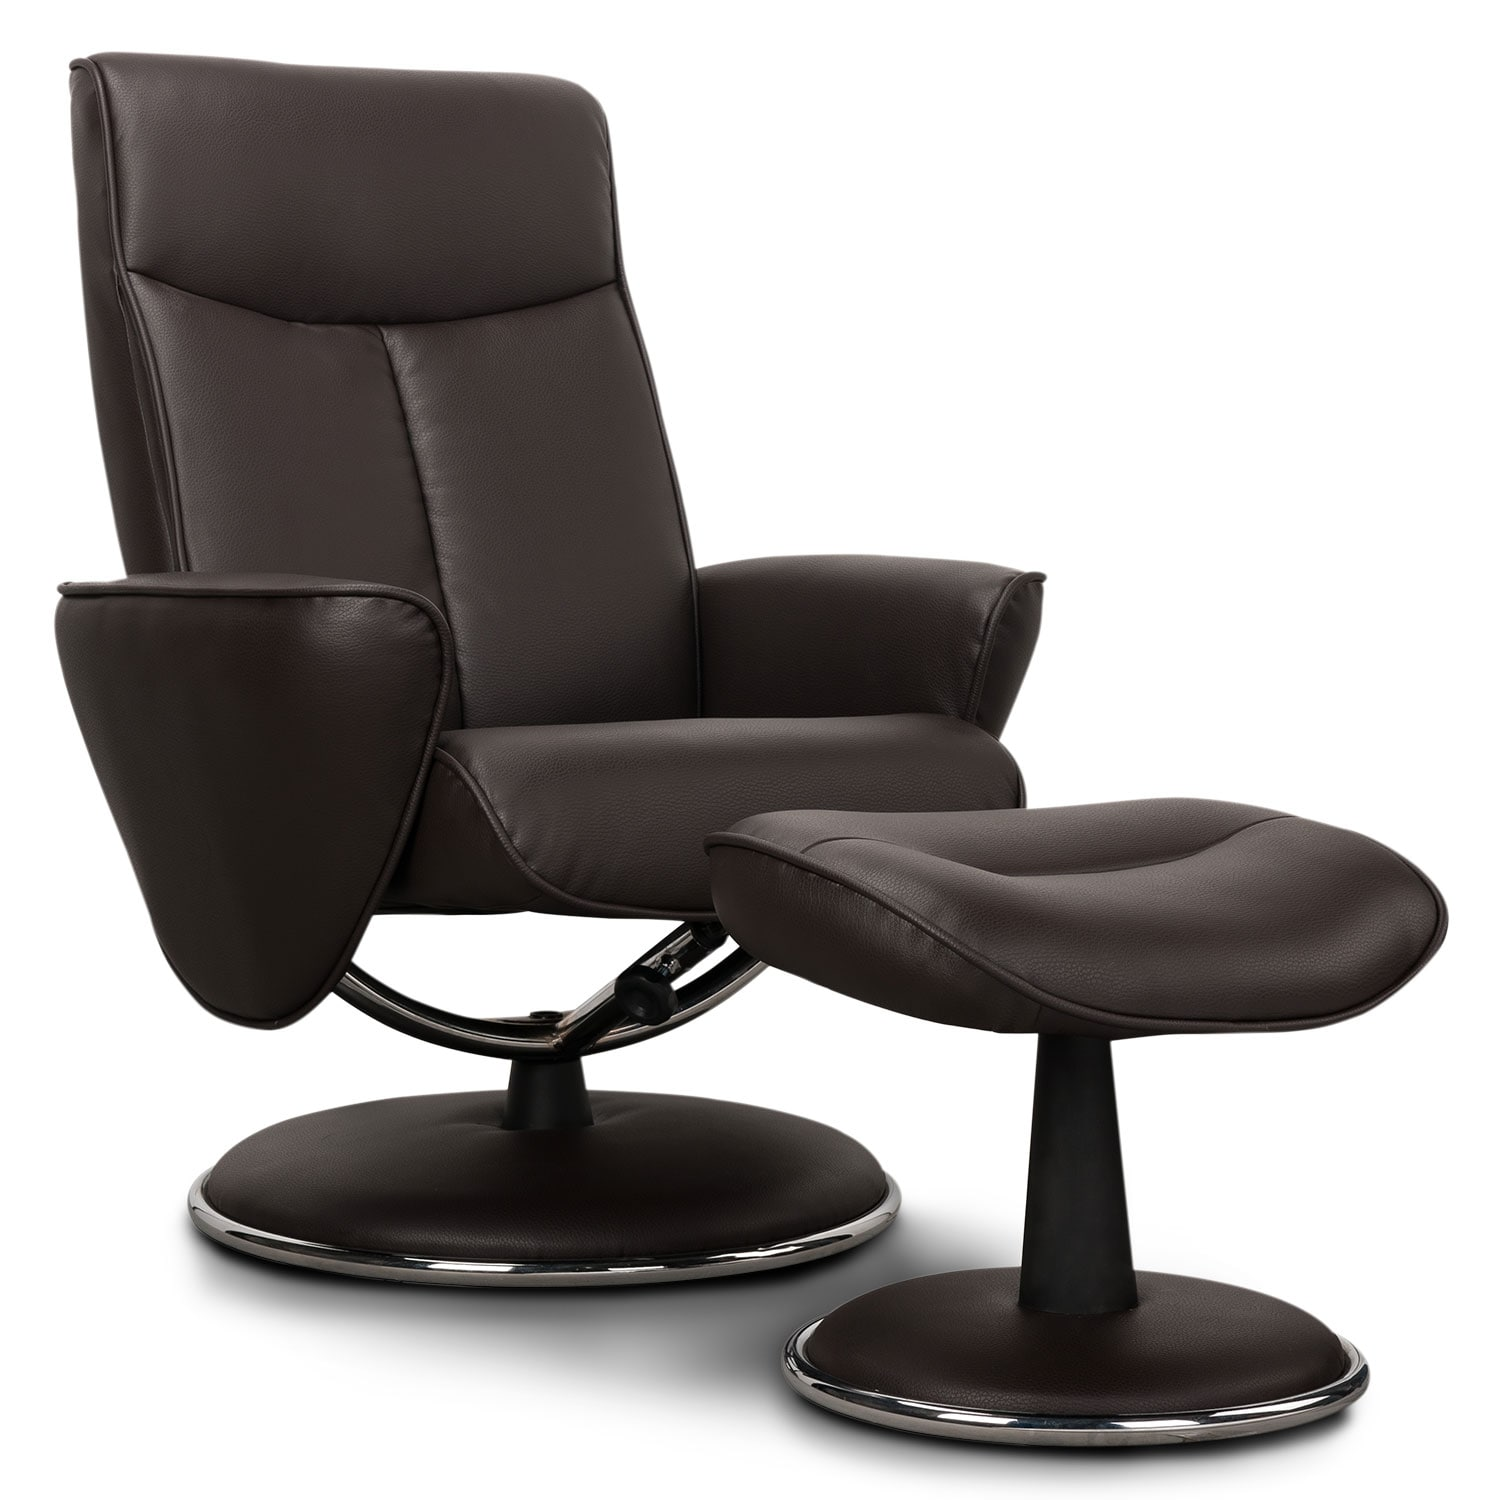 Living Room Furniture - Tracer Reclining Chair and Ottoman - Chocolate